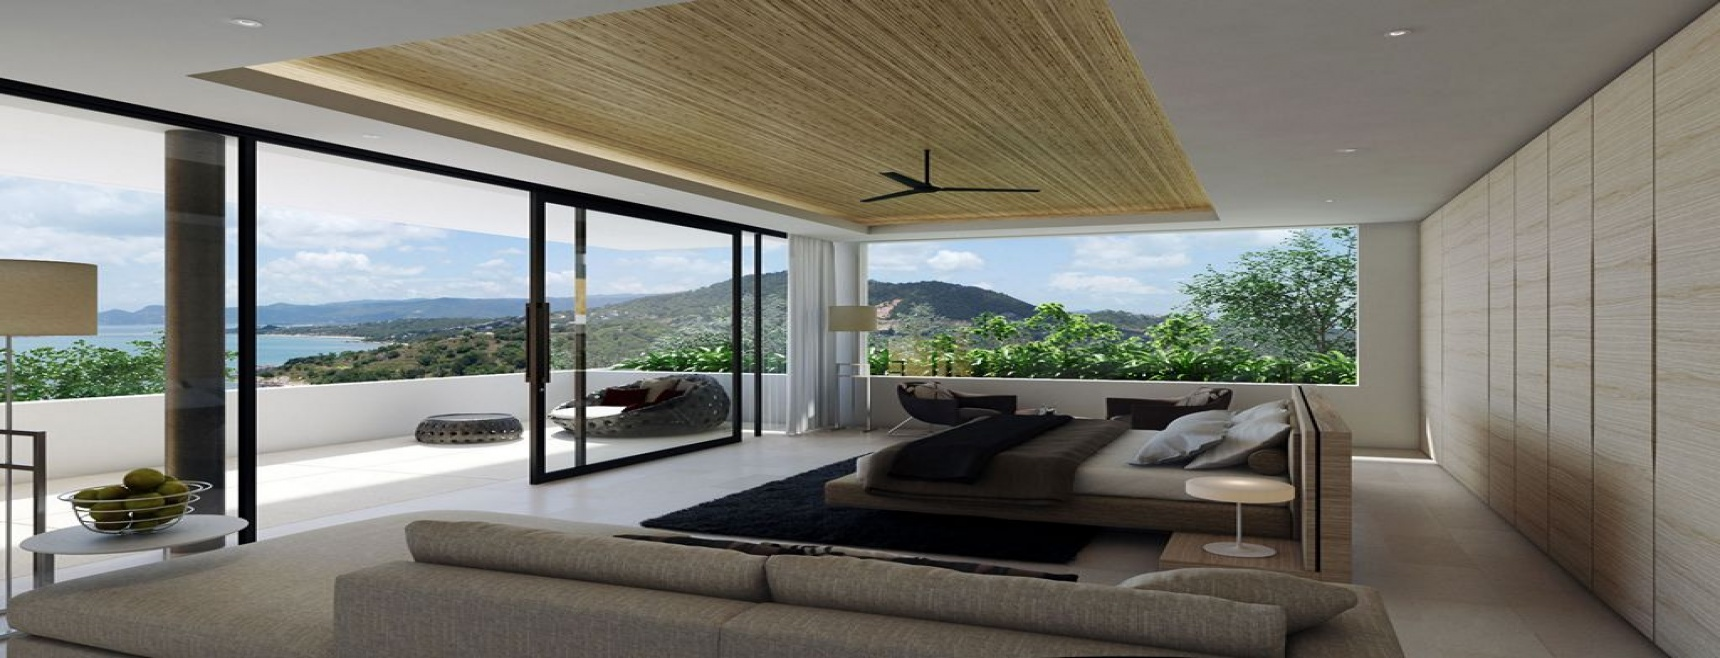 8 Bedrooms, Villa, Holiday Villa Rentals, Listing ID 1119, Choeng Mon, North East, Koh Samui,